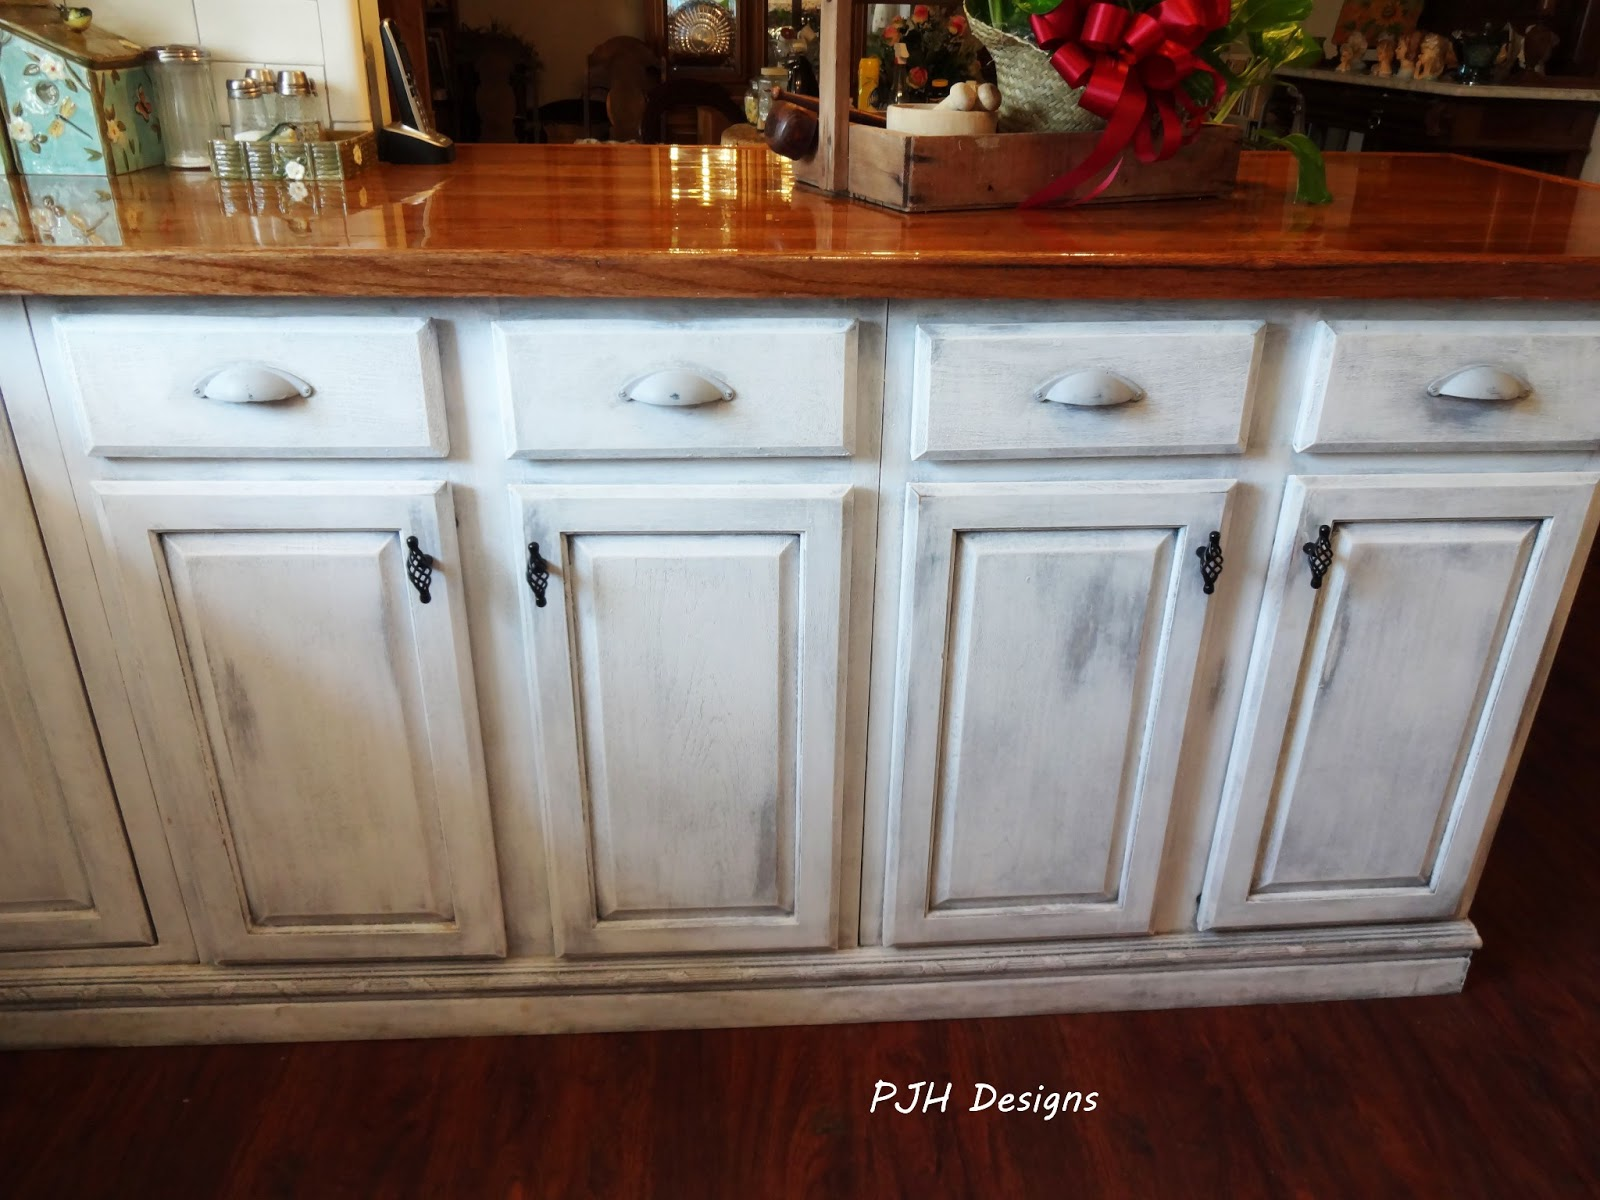 PJH Designs Hand Painted Antique Furniture: How's My ...